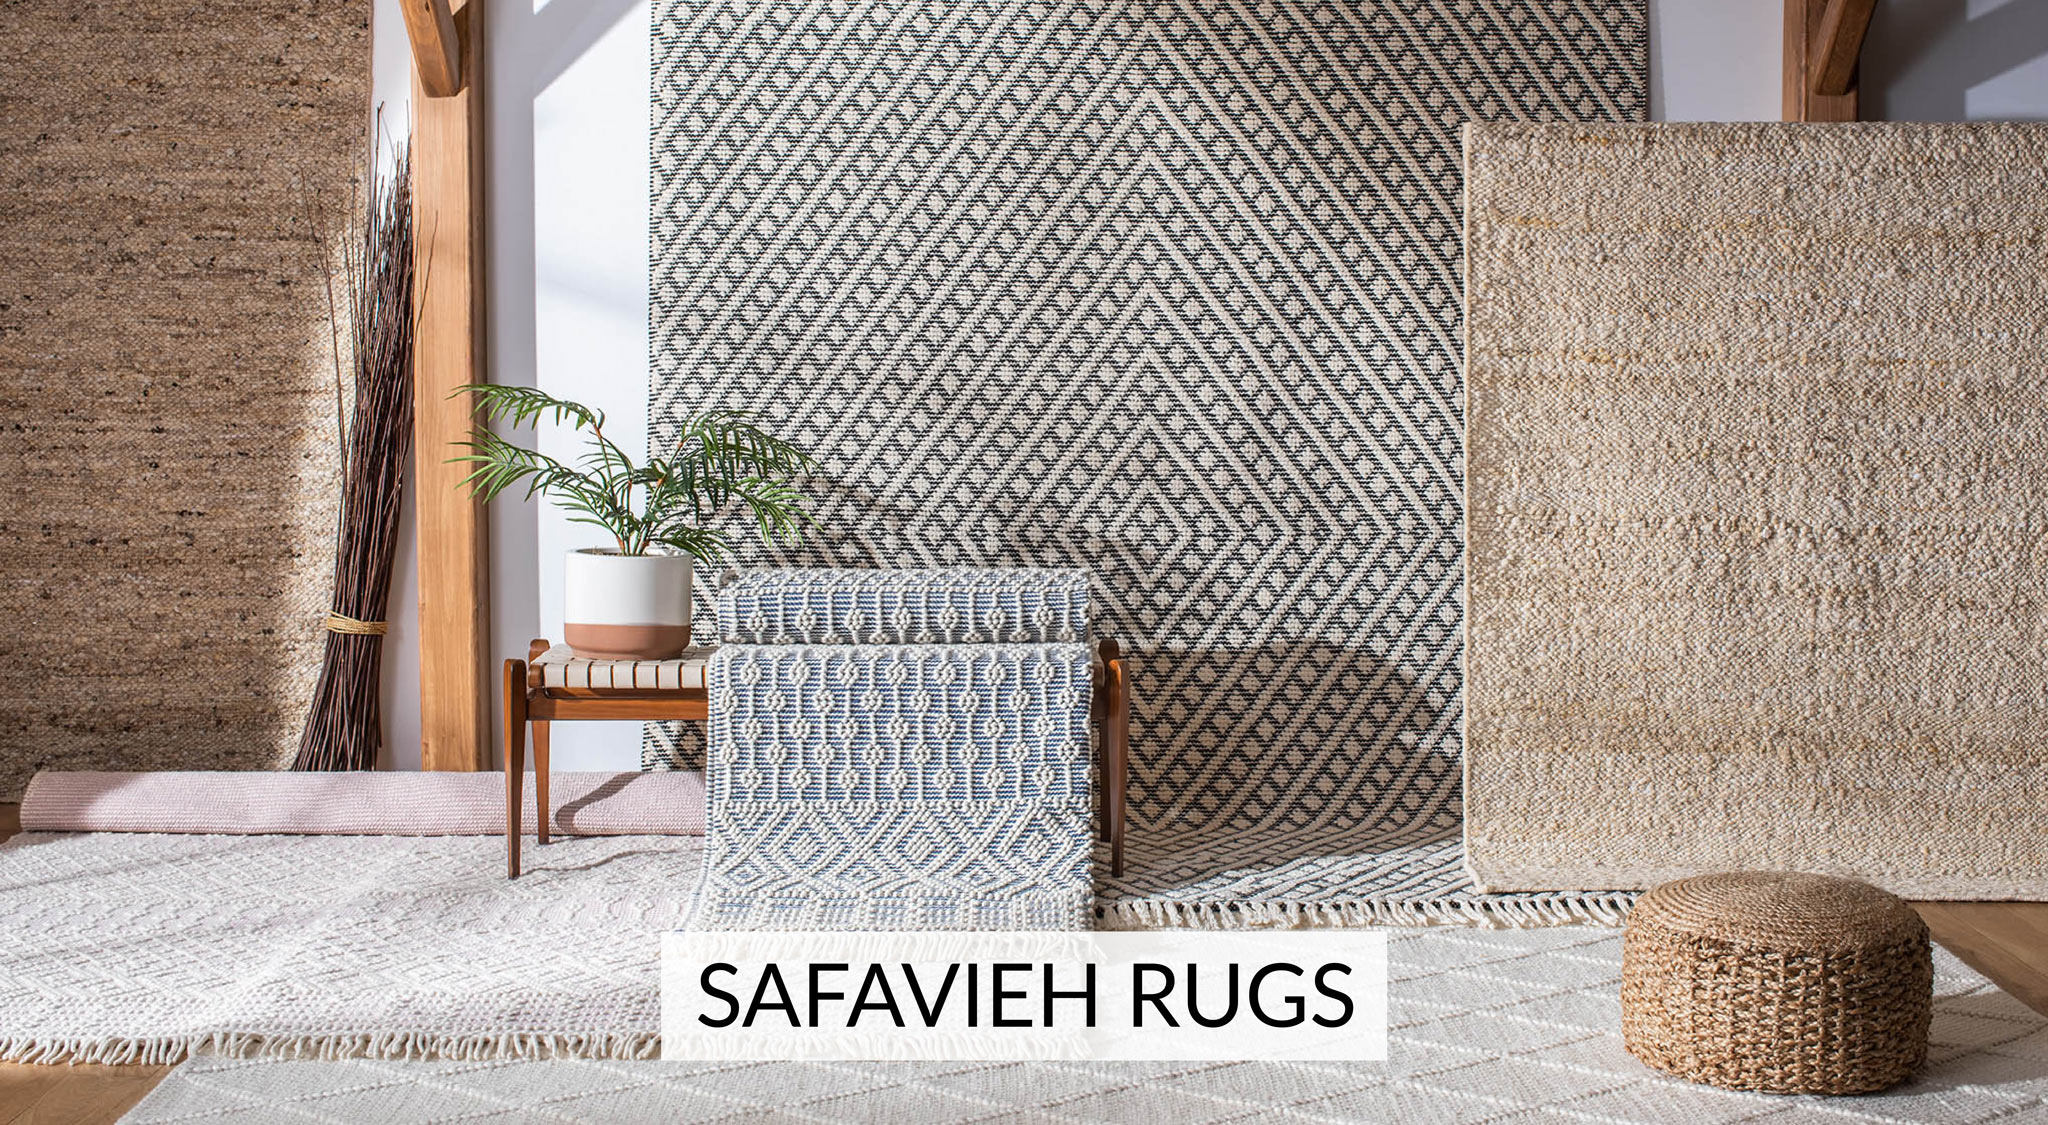 Safavieh Rug Collections